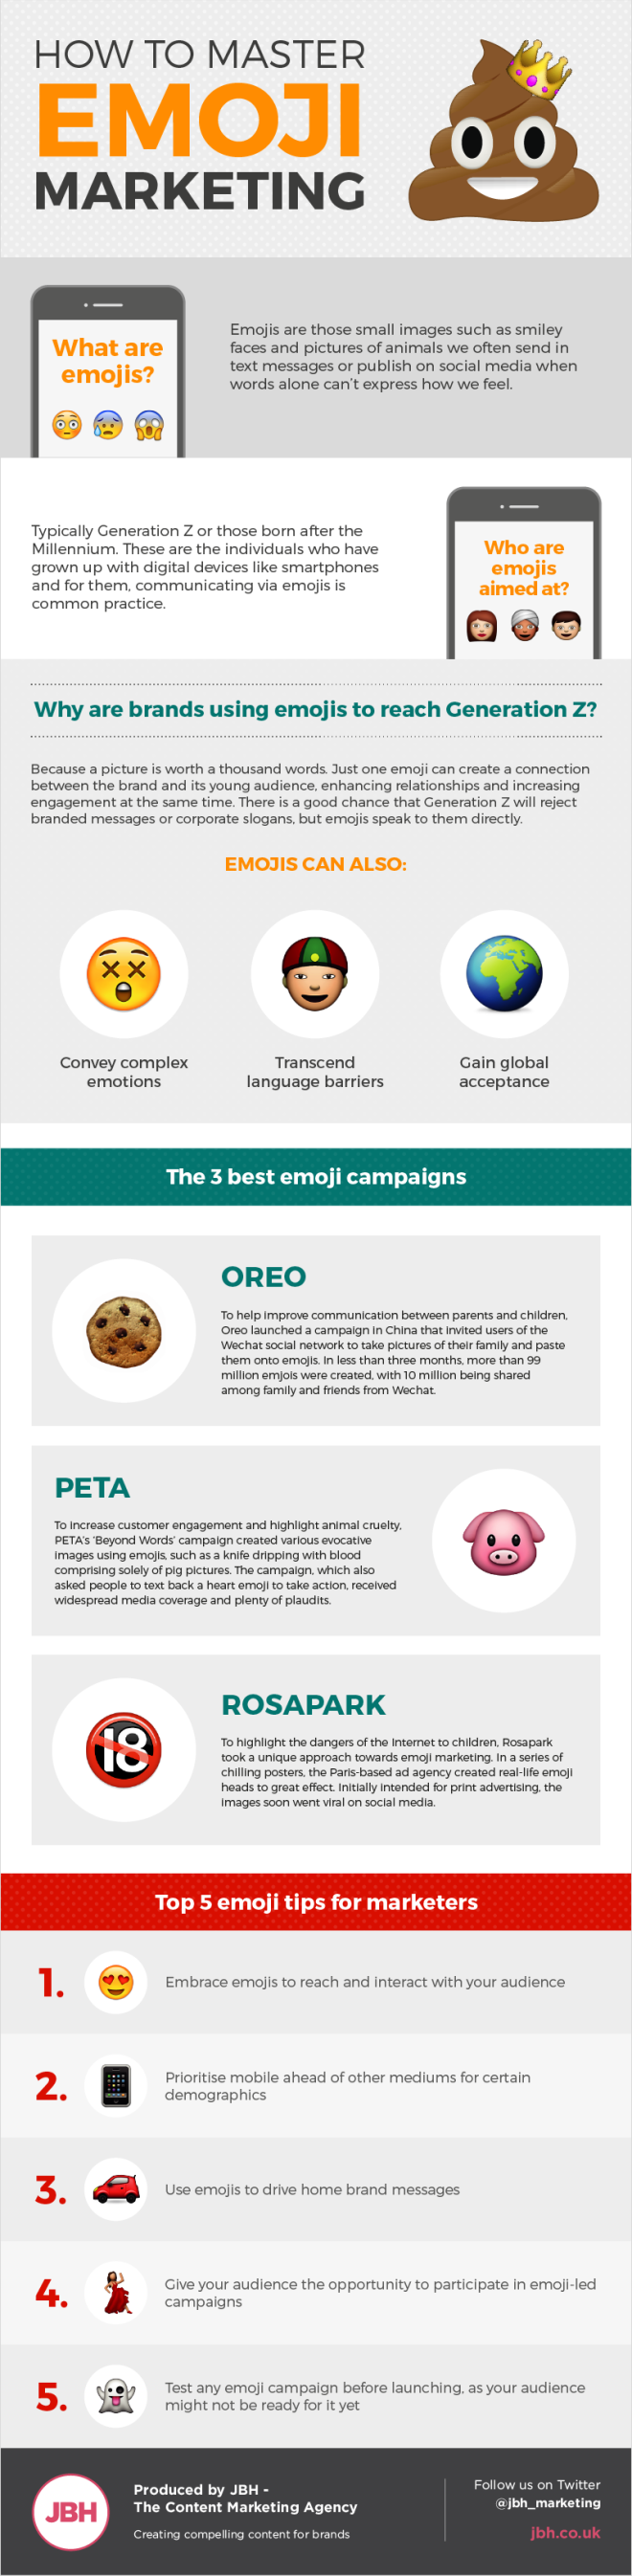 Cómo dominar el Emoji Marketing